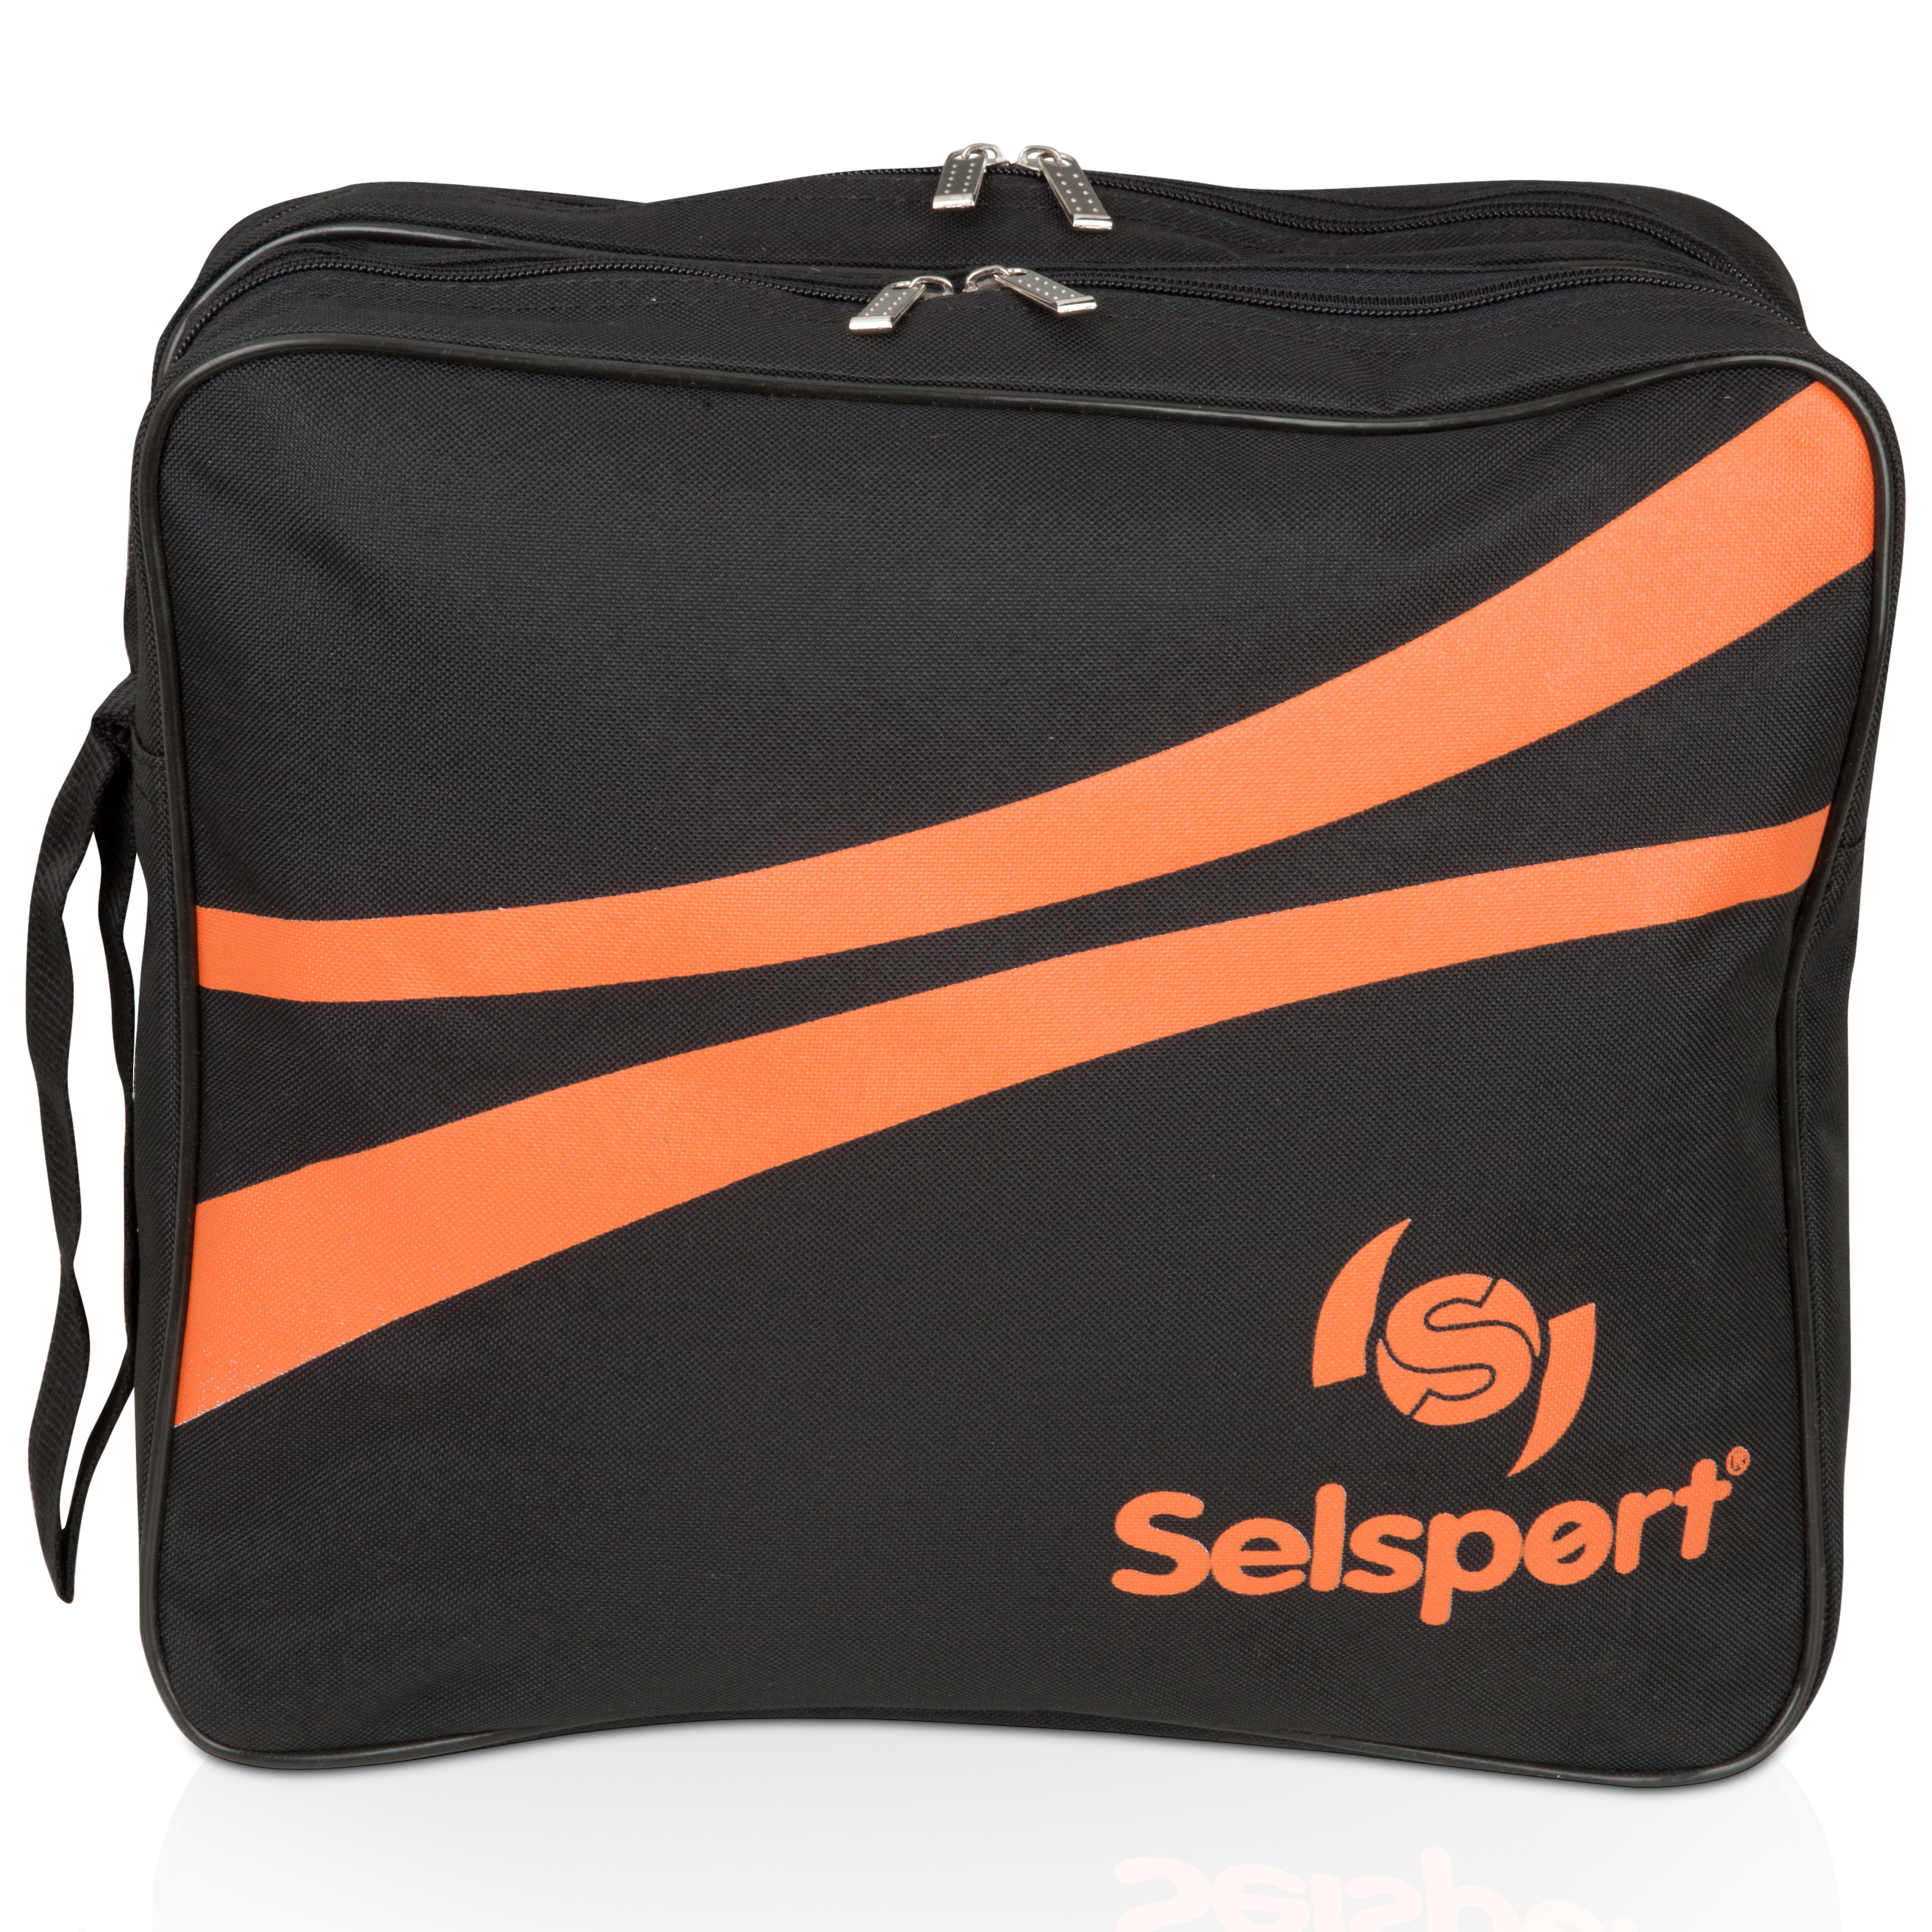 Selsport Double Glove Bag